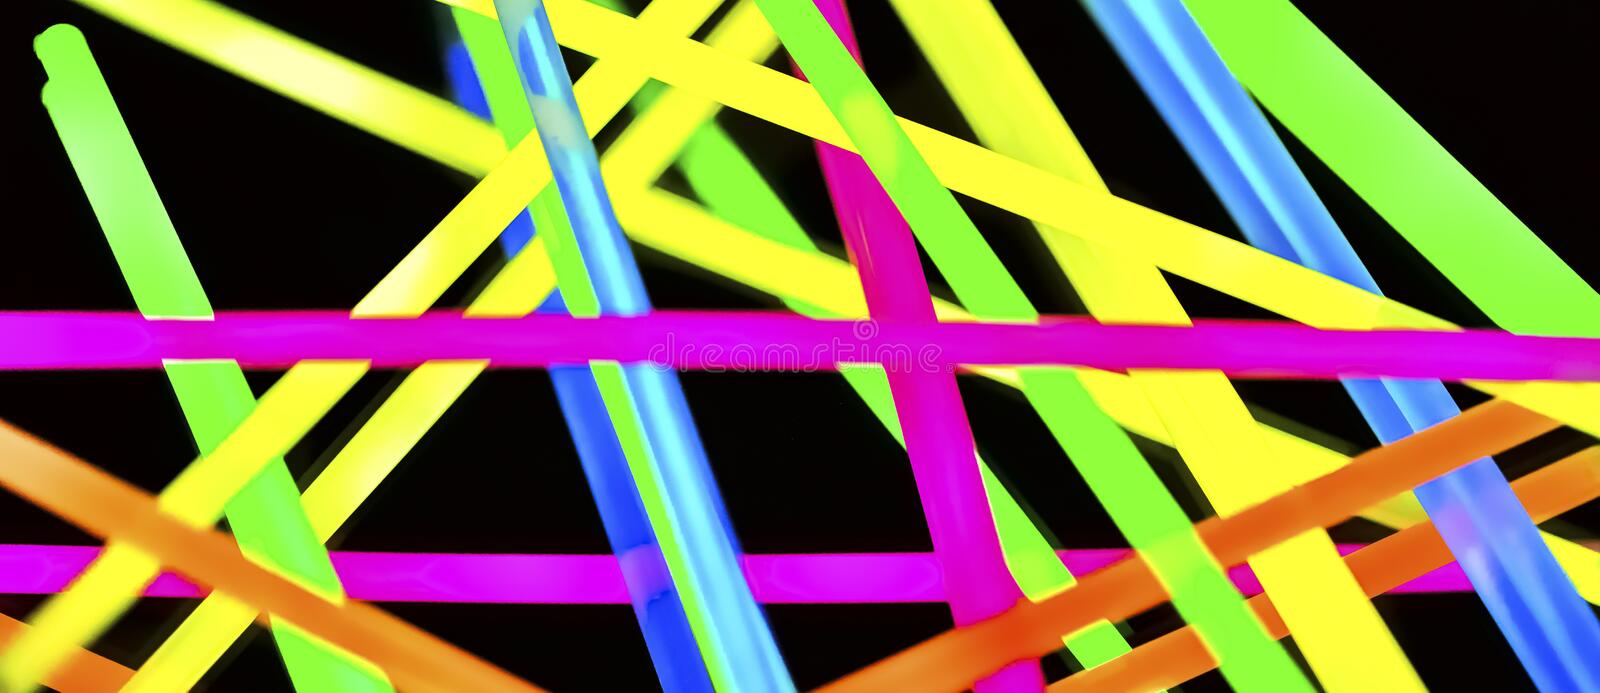 Multicolor fluorescent chem light neon black background. Variation of multicolored colorful colored fluorescent chem light neon tube with reflection on mirror royalty free stock image